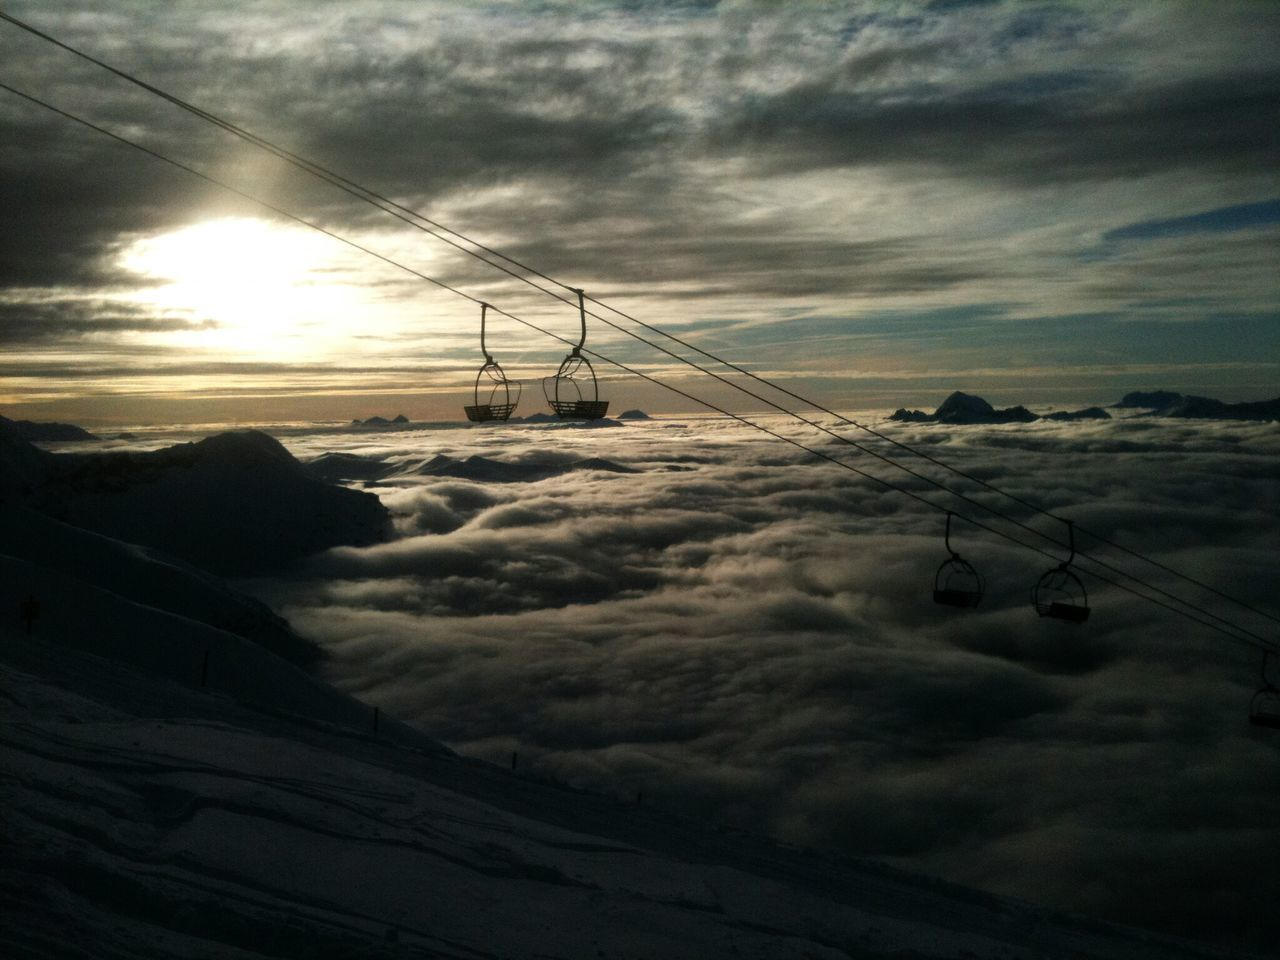 cable, connection, sky, cloud - sky, nature, no people, sunset, weather, mountain, landscape, scenics, cold temperature, beauty in nature, outdoors, snow, winter, overhead cable car, transportation, tranquility, tranquil scene, ski lift, technology, day